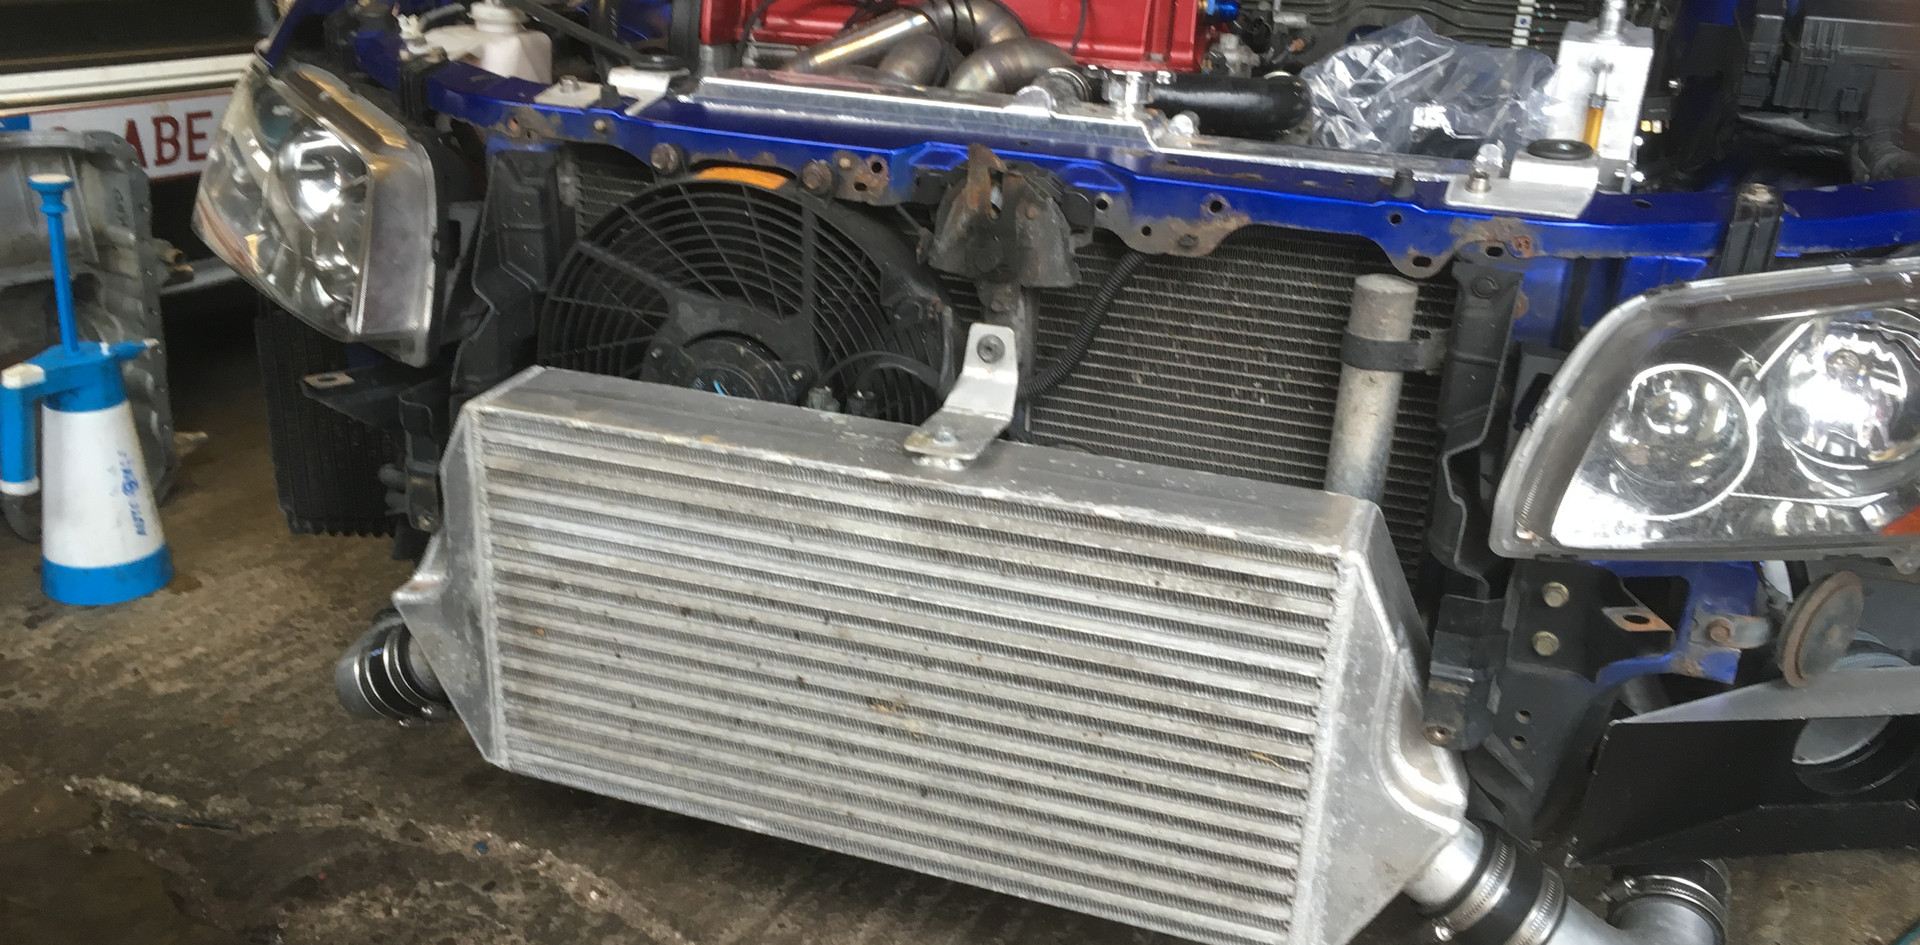 Mitsubishi Evo Intercooler Car.JPG